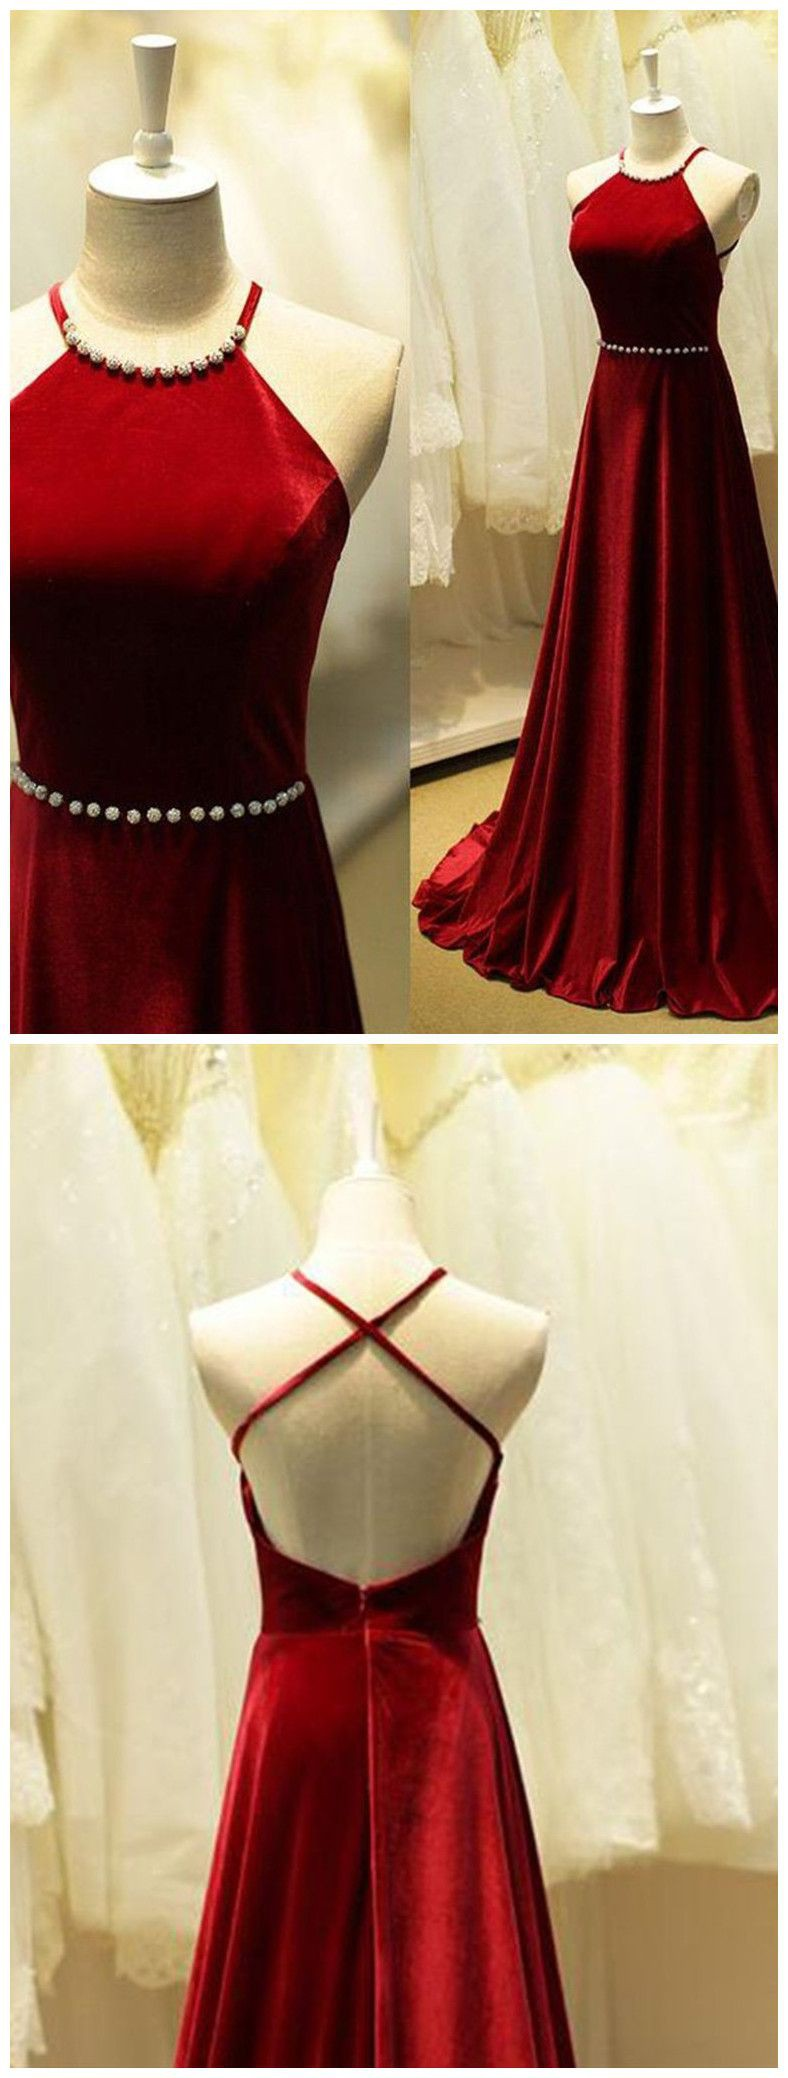 Evening gown for teenage girl